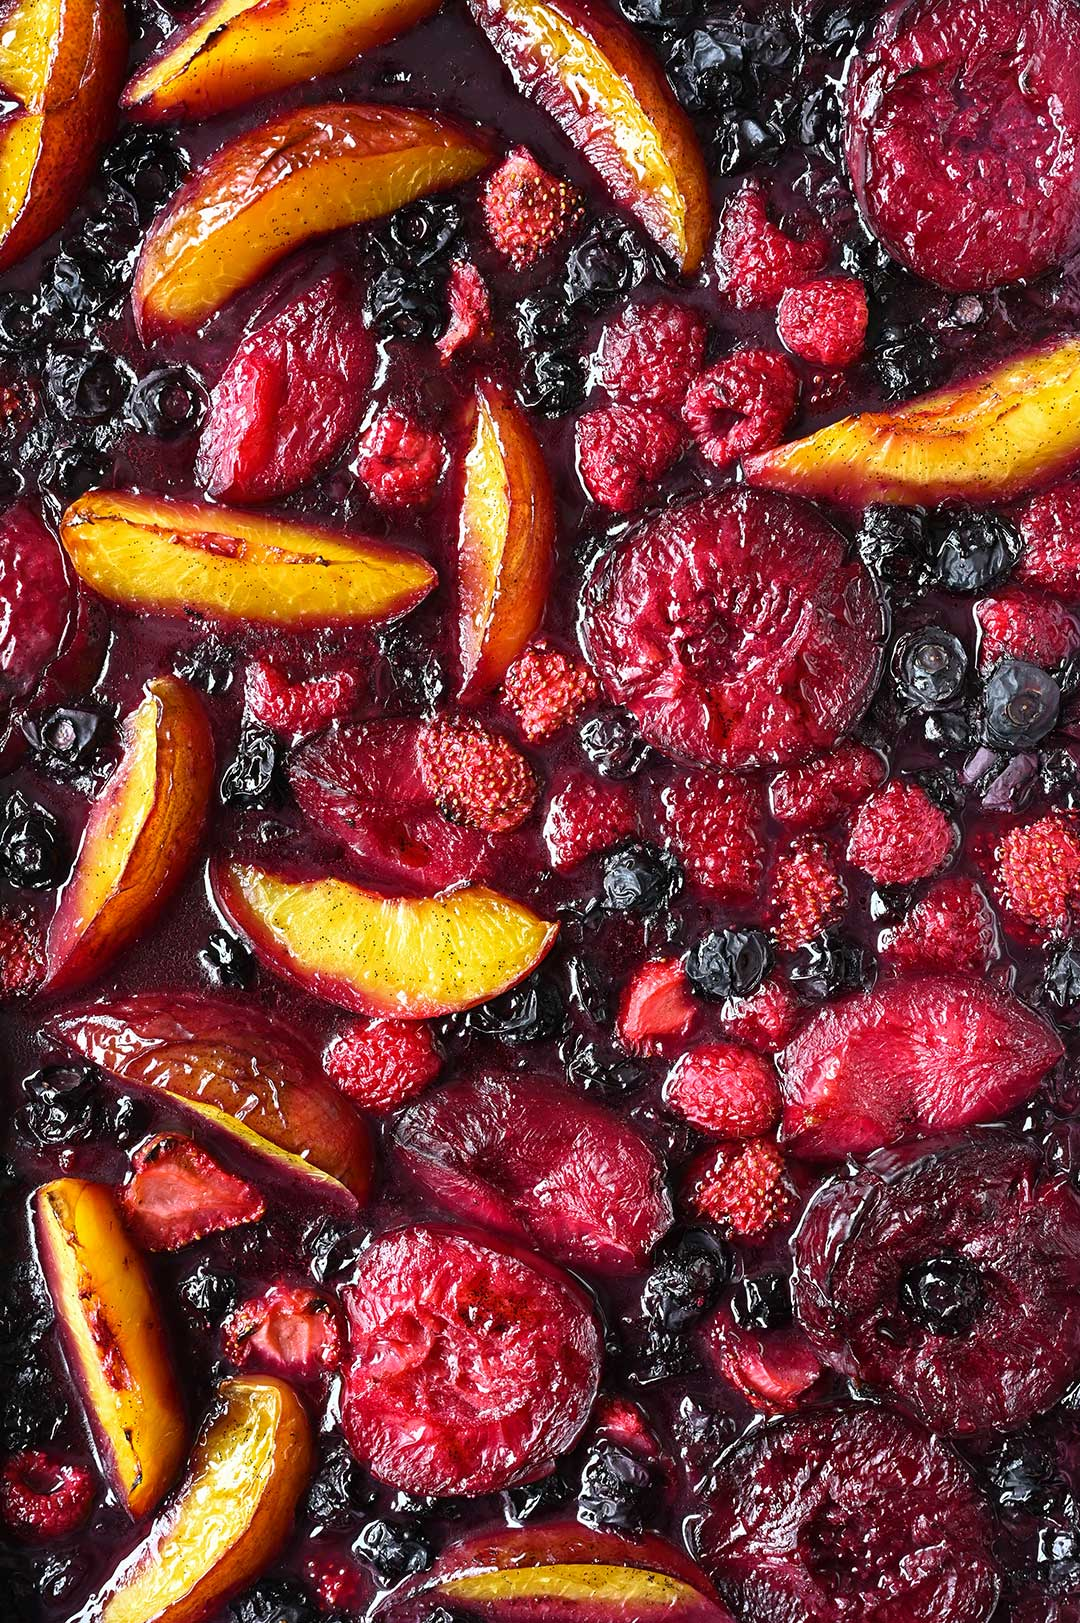 serving dumplings | Roasted summer fruit with rum and brown sugar